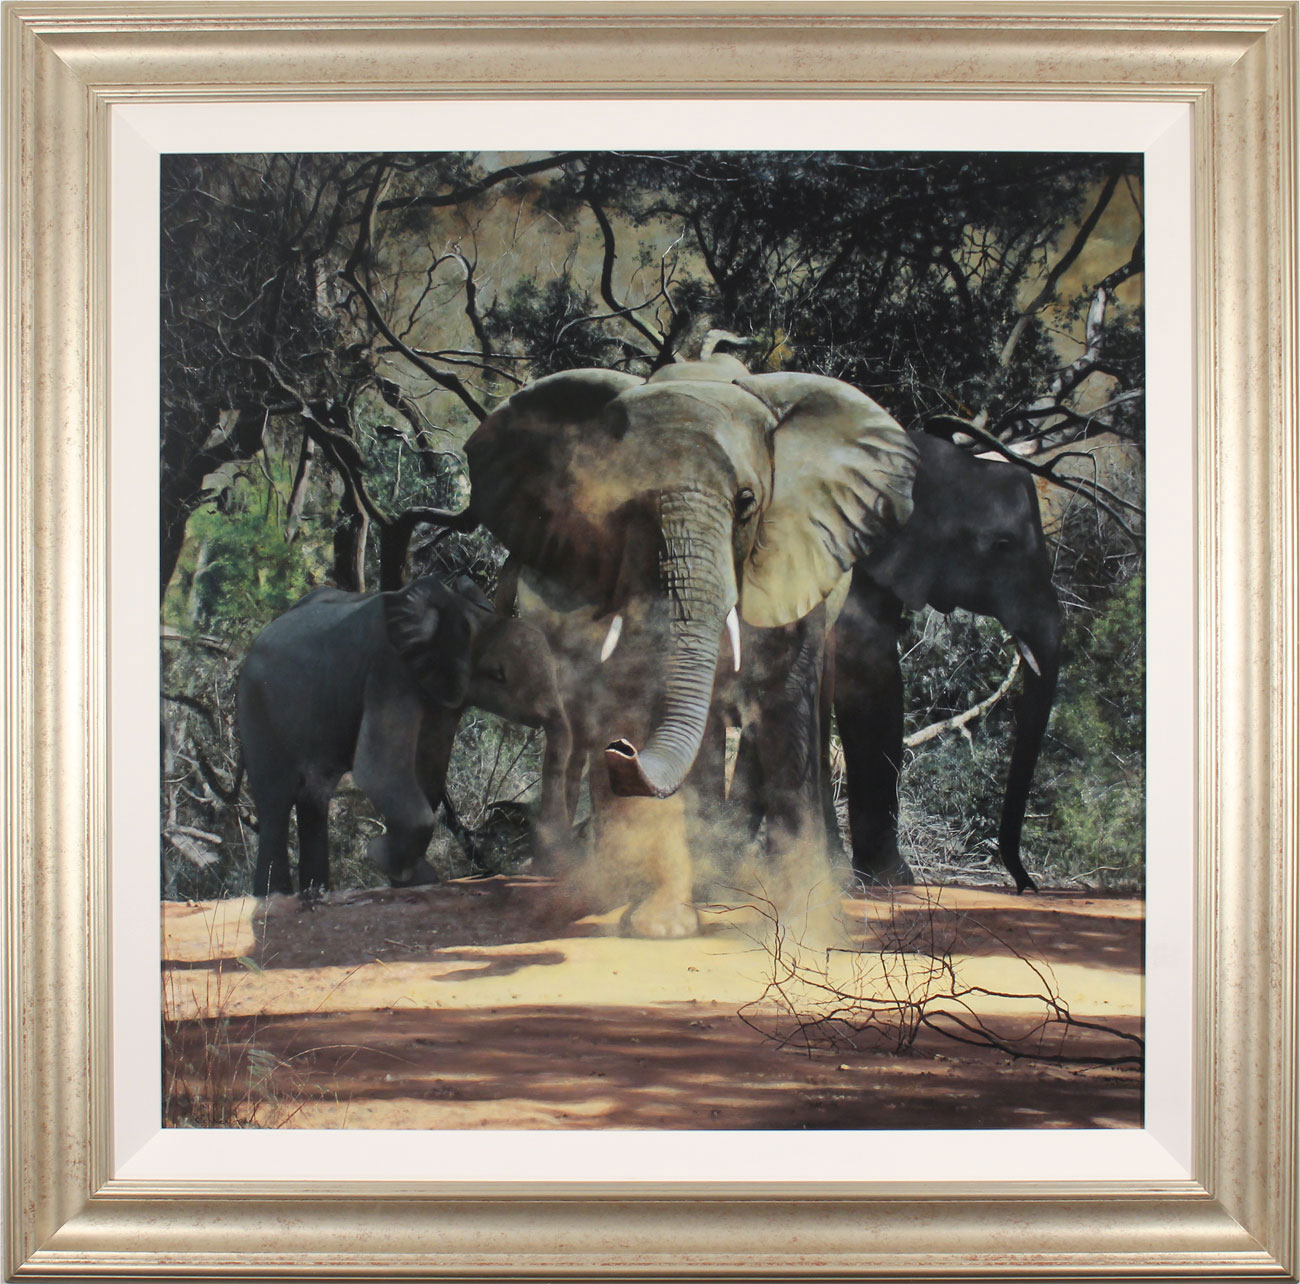 Stephen Park, Original oil painting on panel, Elephants Click to enlarge